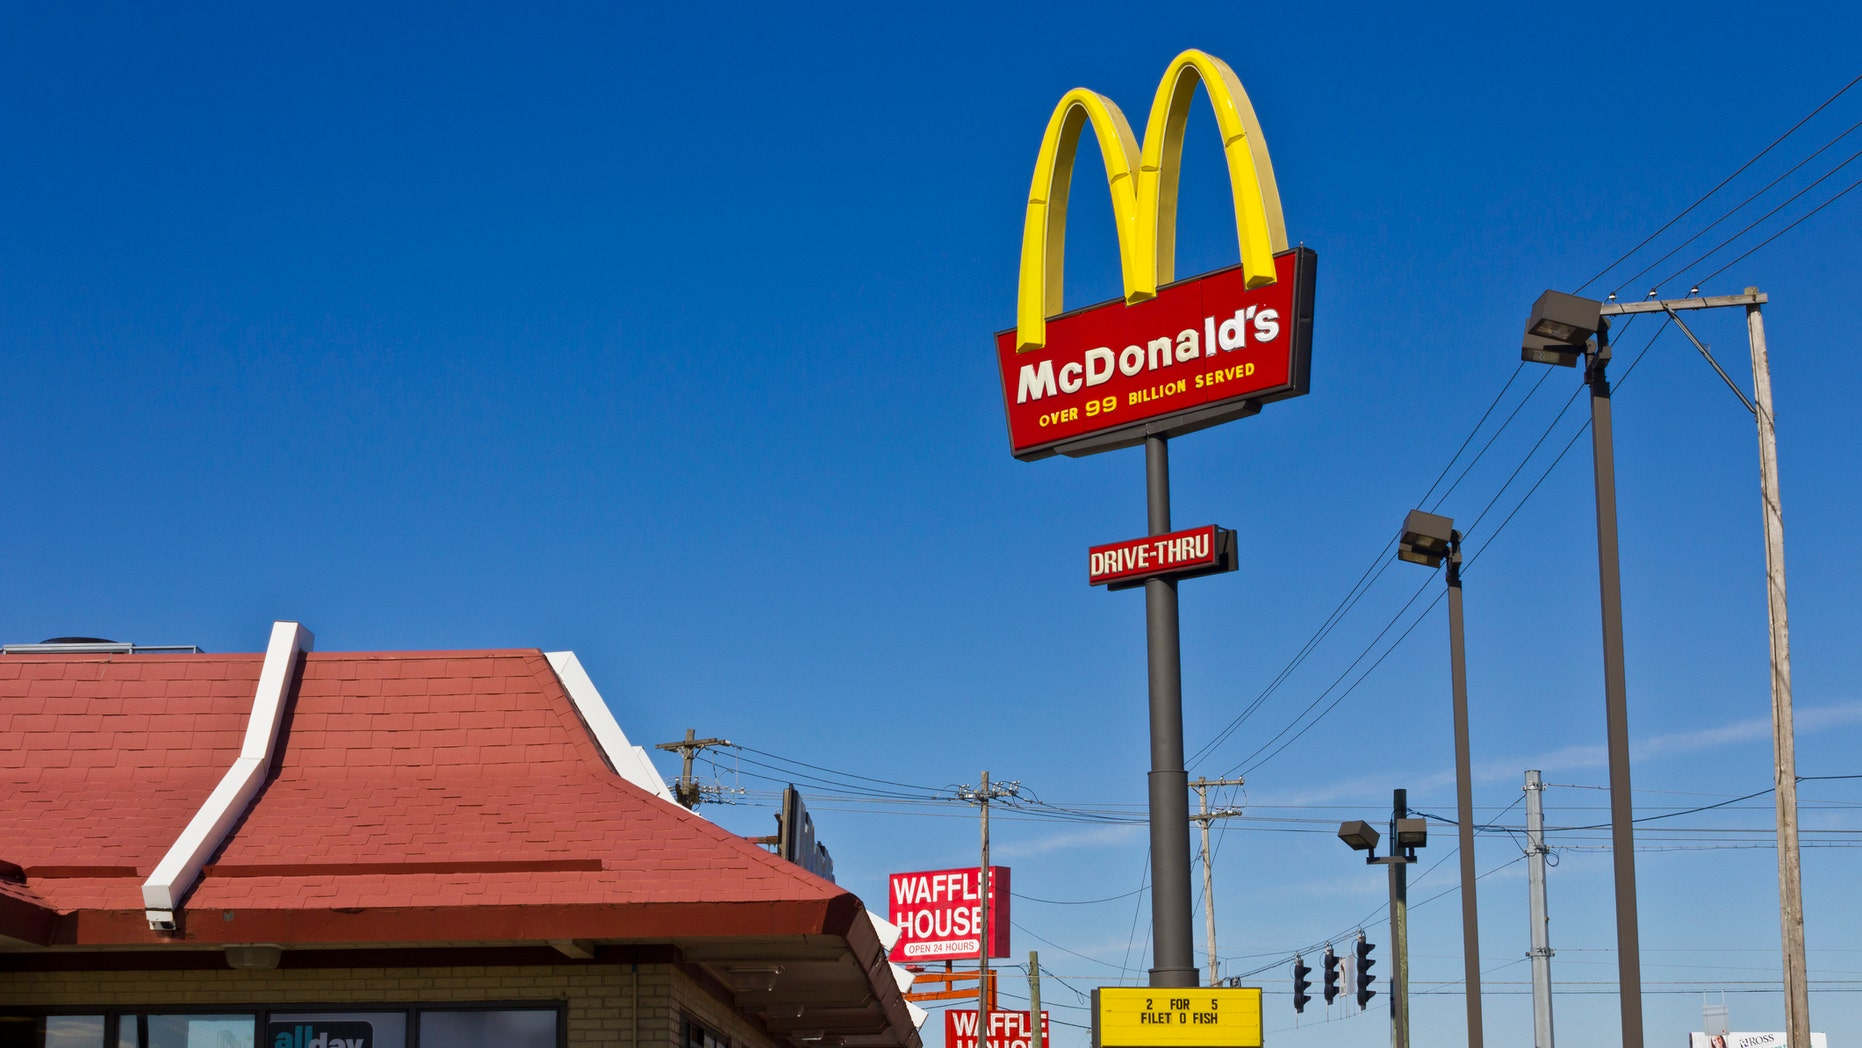 The McDonald's restaurant is reportedly cooperating with the investigation.